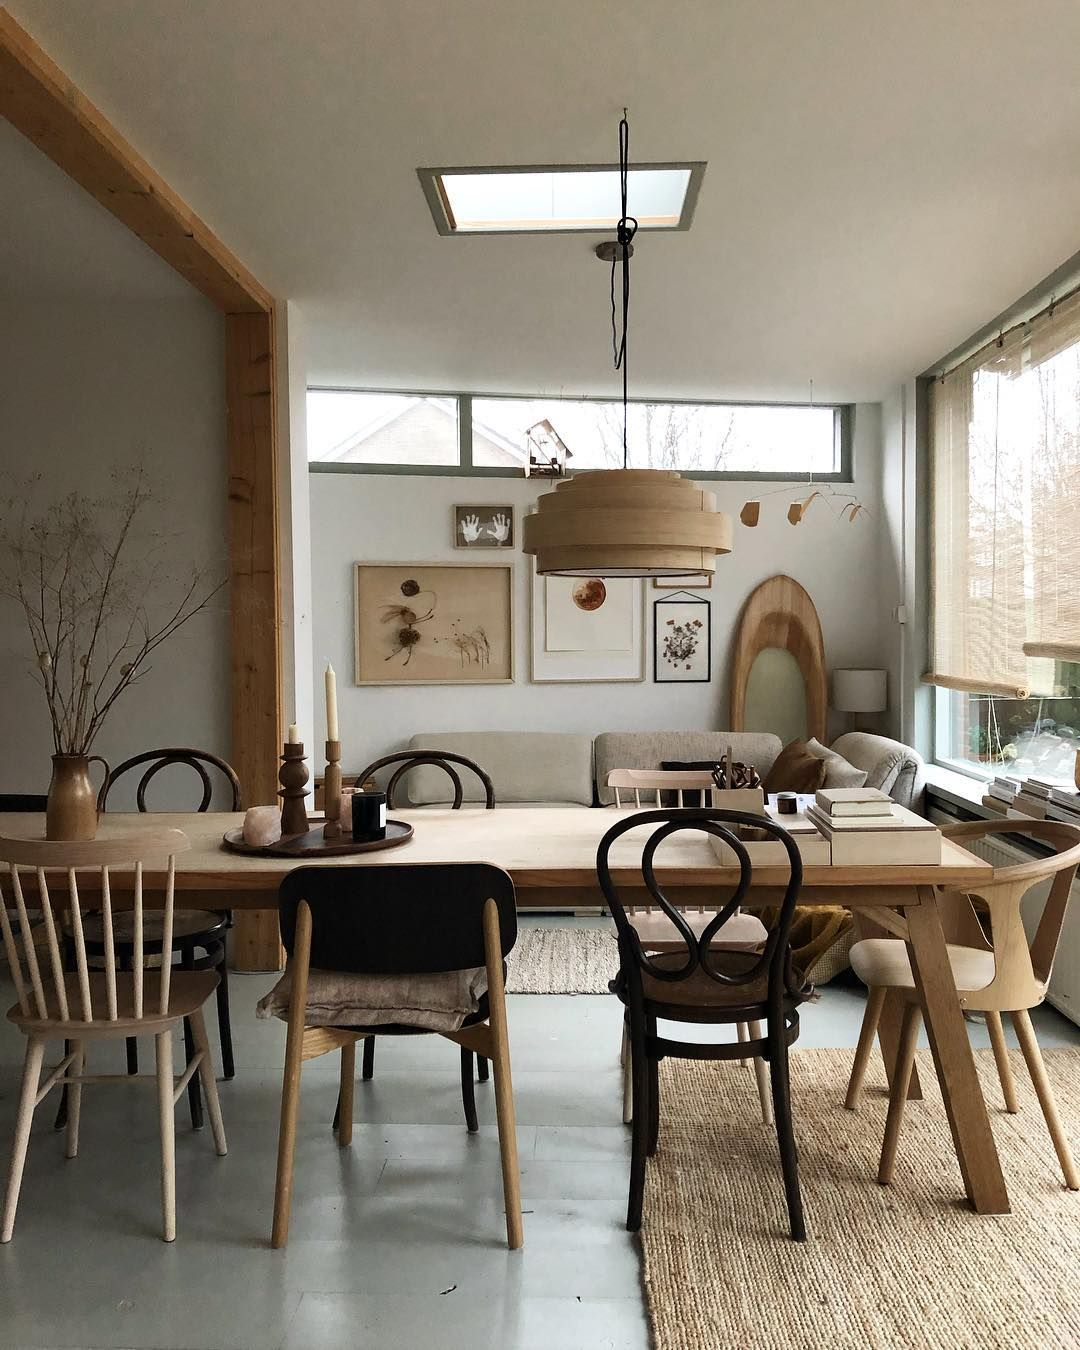 Image May Contain Table And Indoor Stylish Dining Room Dining Room Small Home My parent dining room